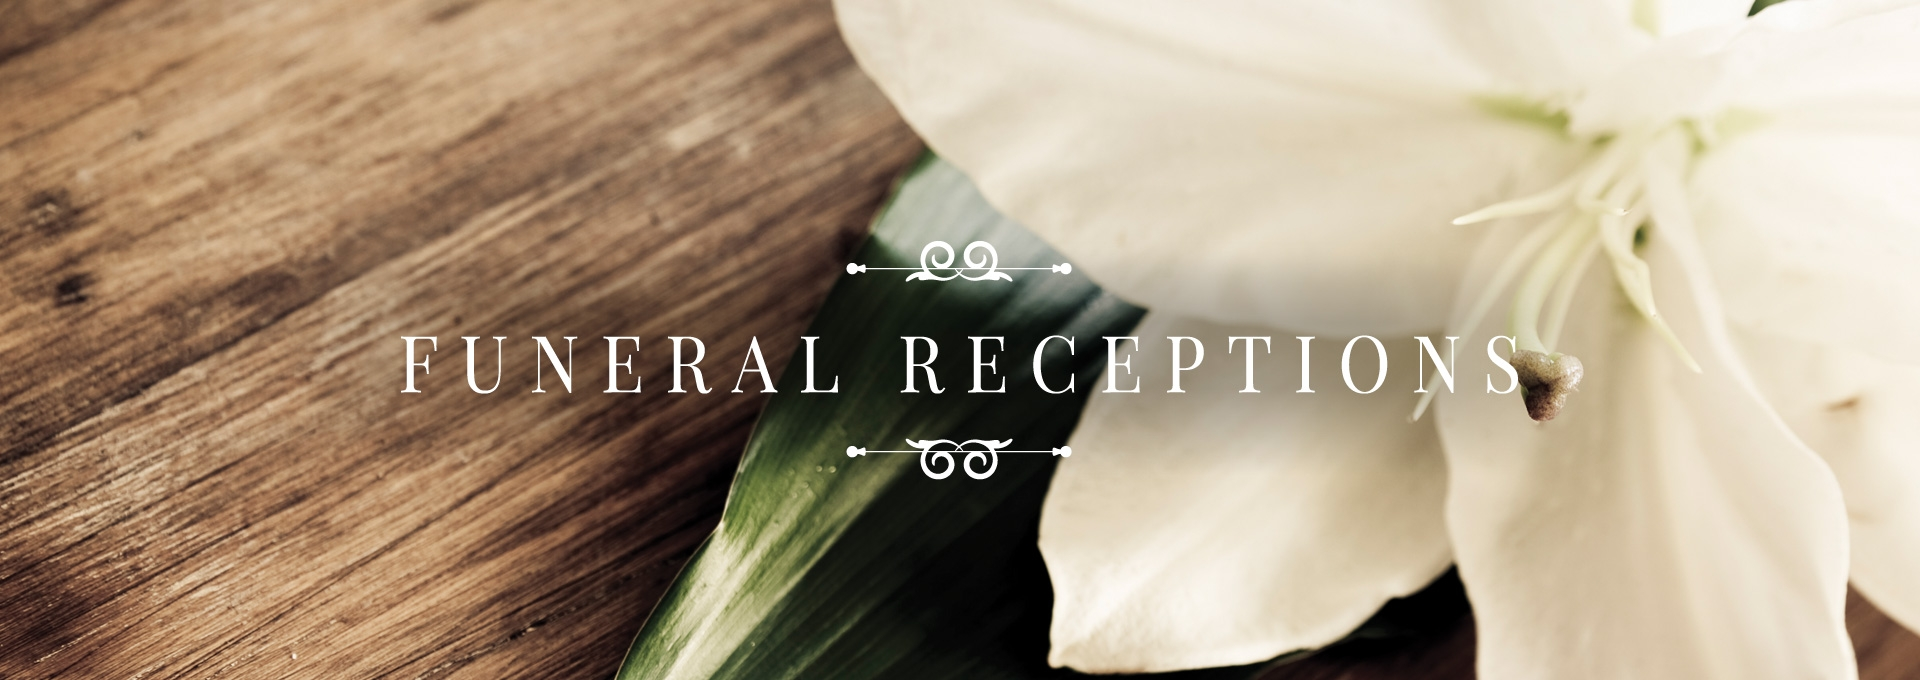 Funeral Receptions at the Durrant House Hotel, North Devon